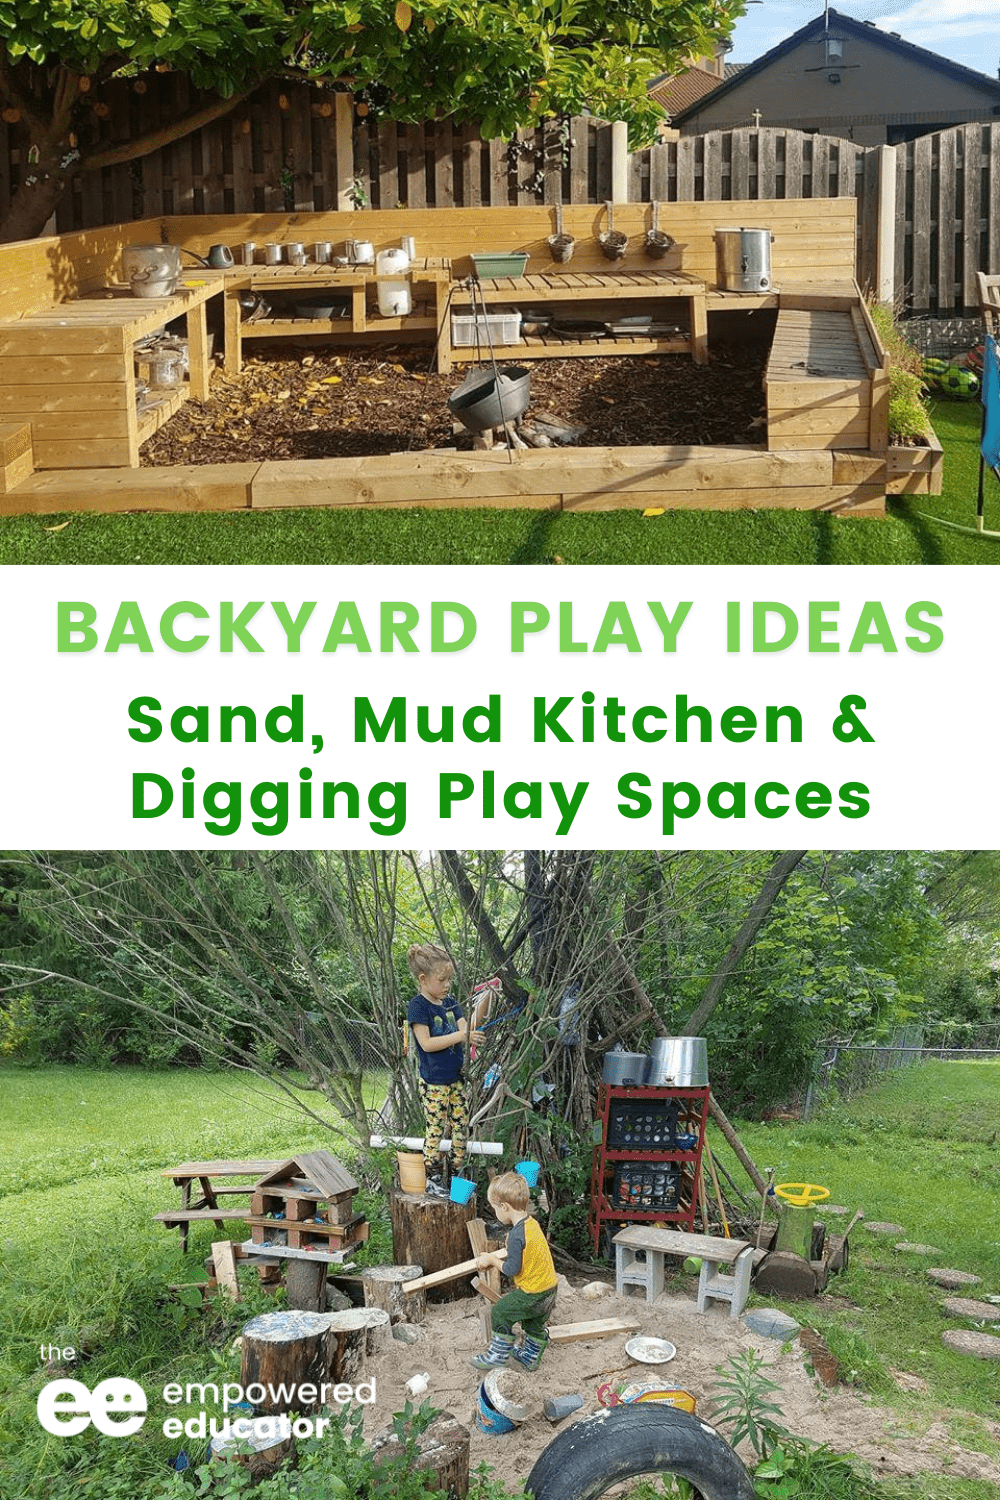 Ideas You Can Use for Simple Sand, Mud Kitchen and Digging Play Spaces